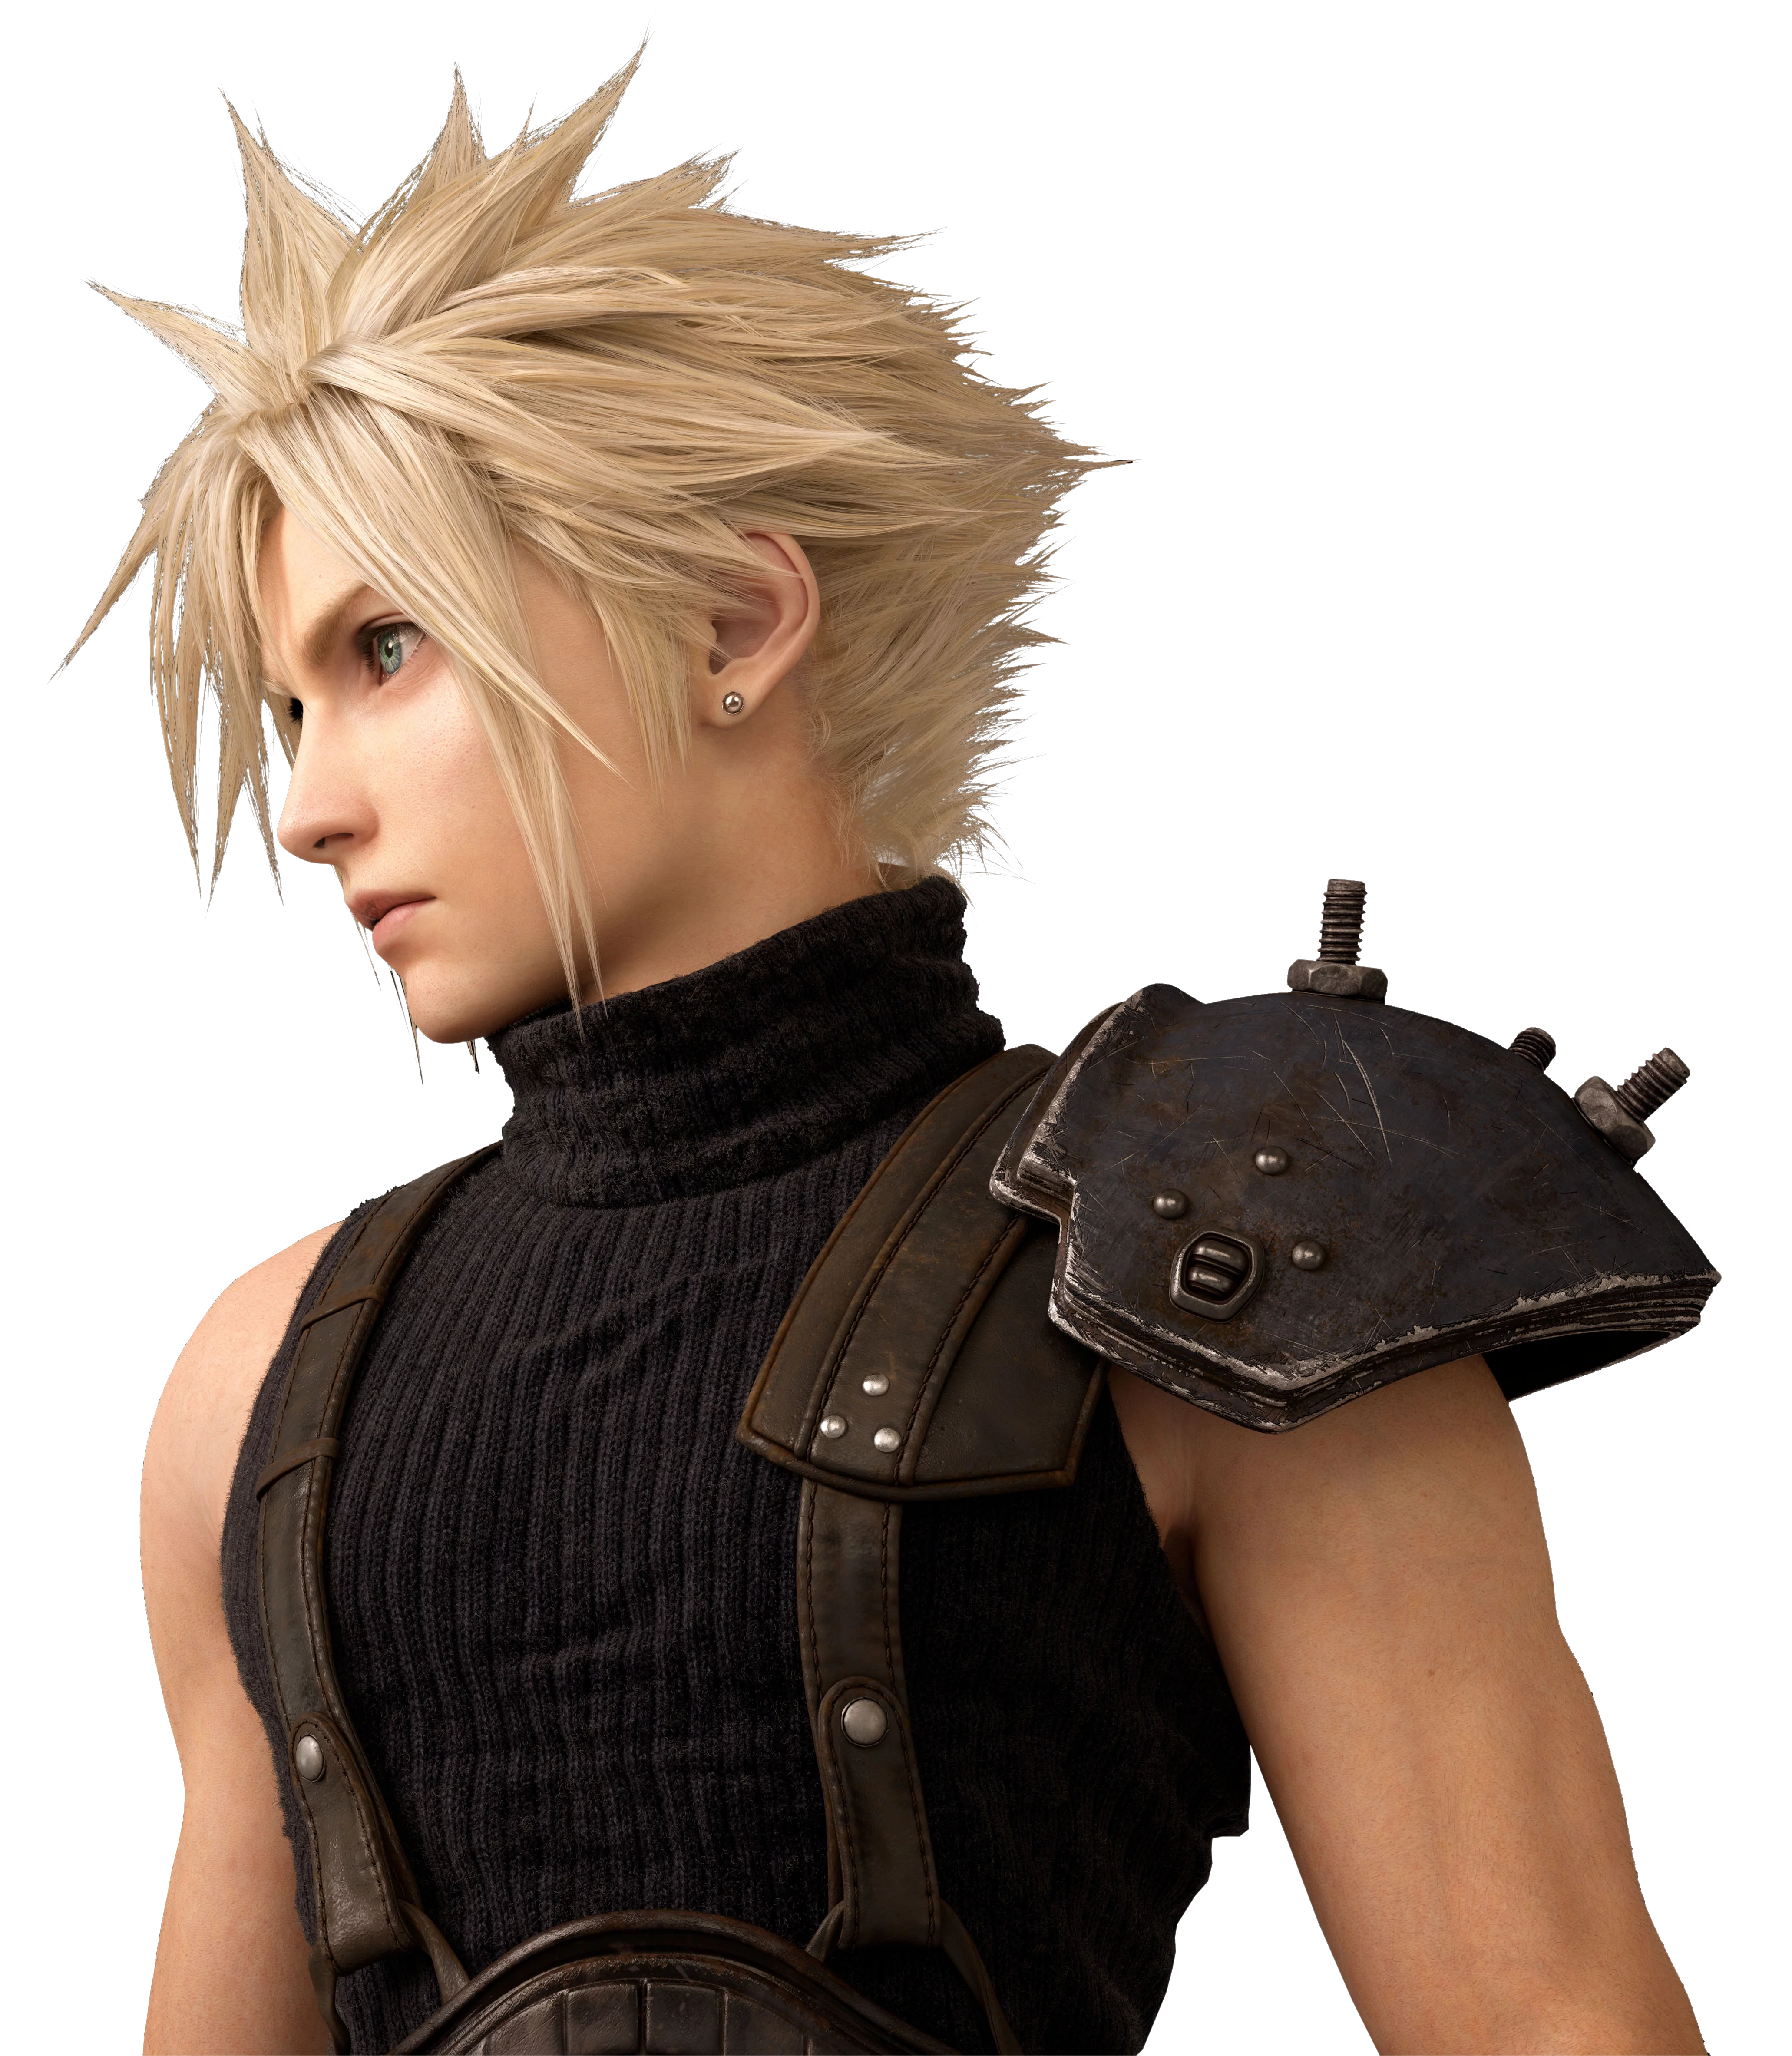 Final Fantasy Vii Remake Cloud Render By Crussong On